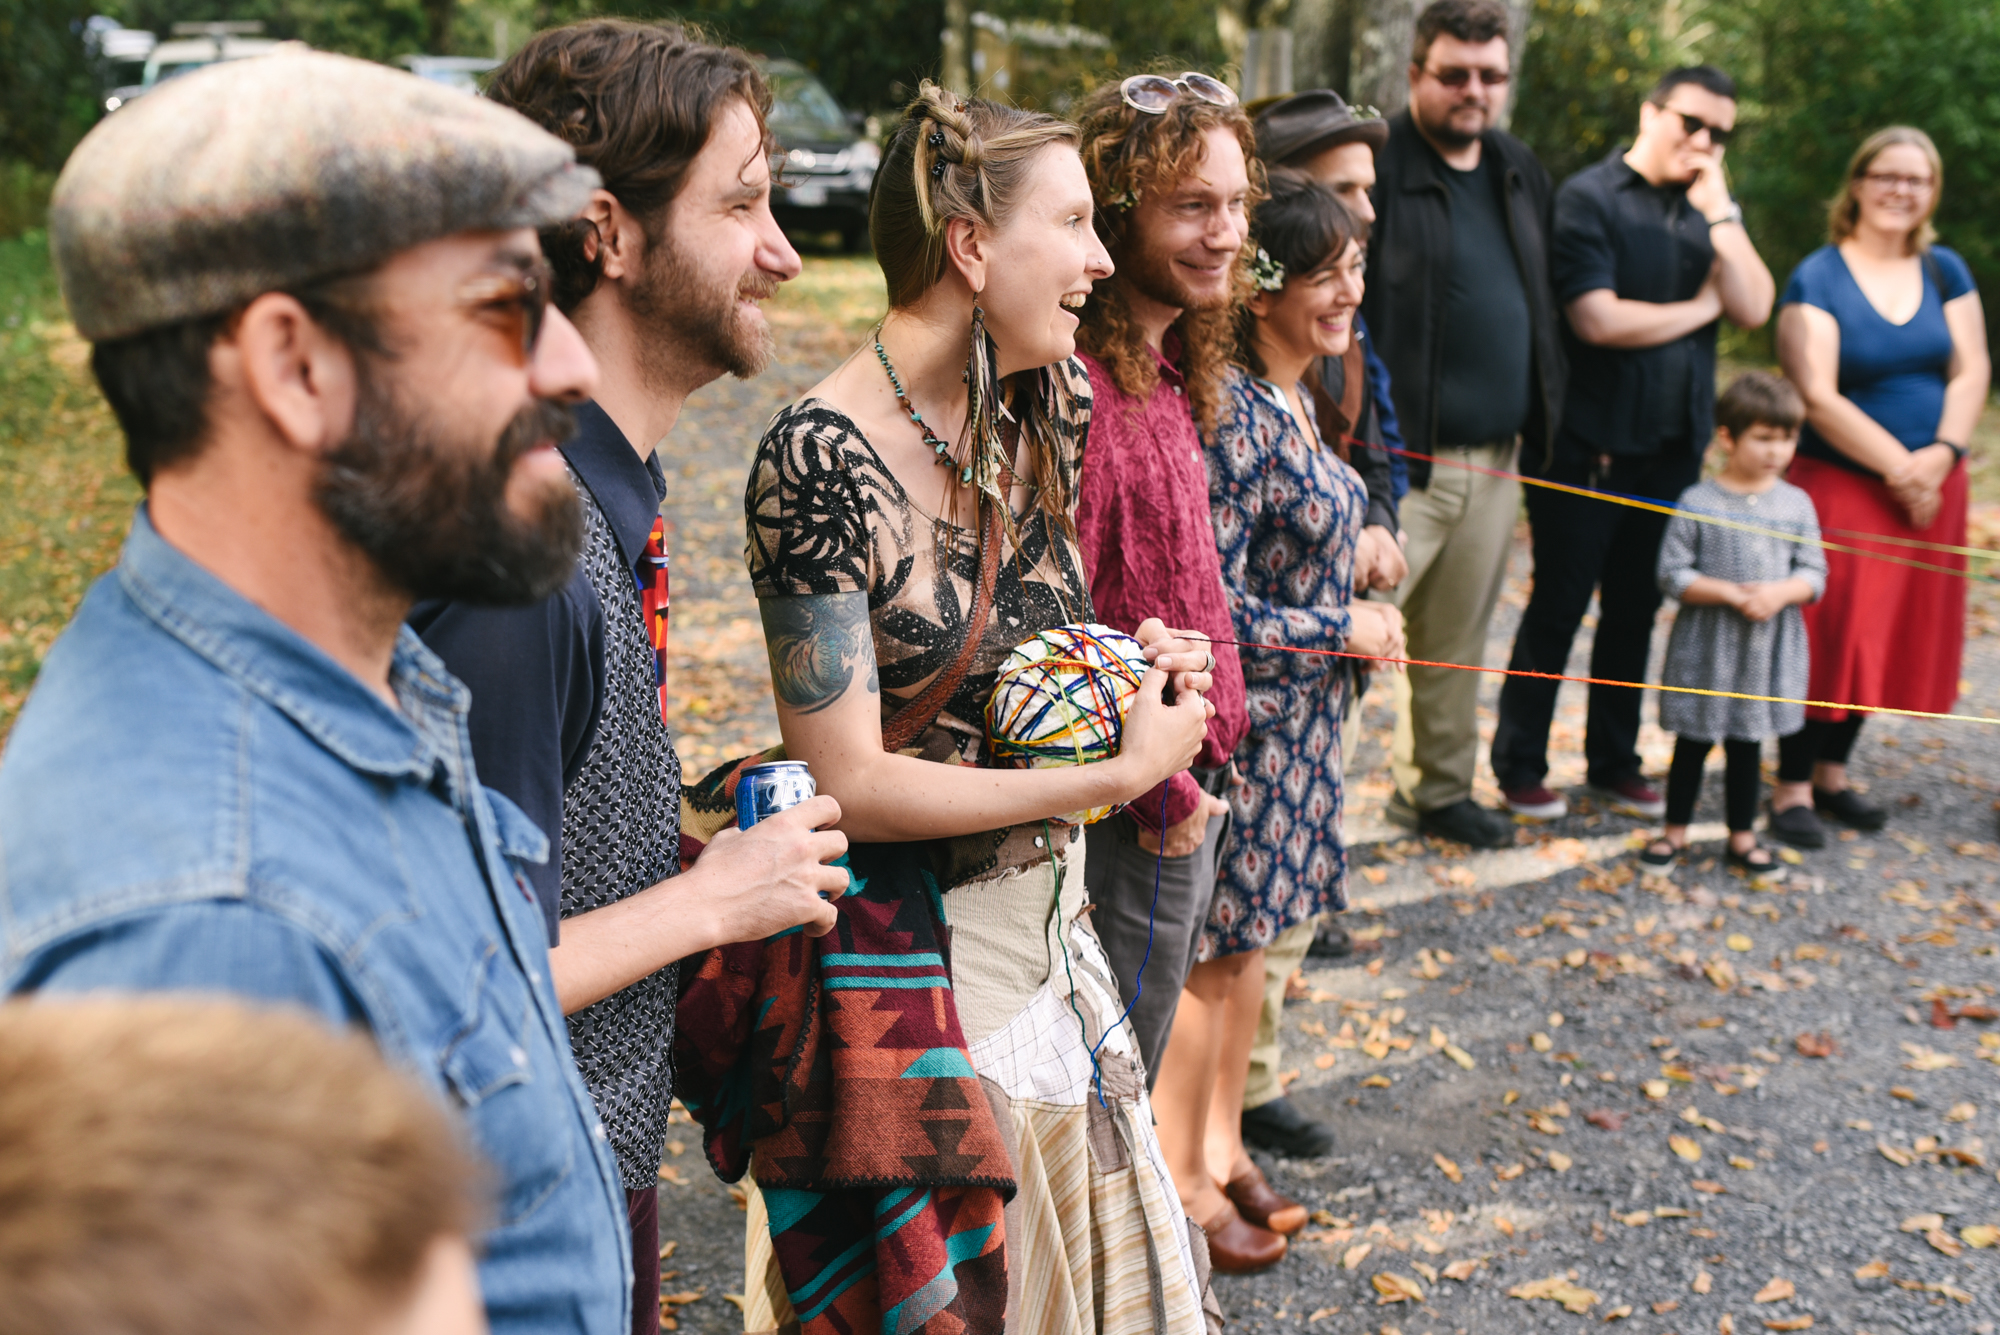 Mountain Wedding, Outdoors, Rustic, West Virginia, Maryland Wedding Photographer, DIY, Casual, Guests in yarn weaving ceremony